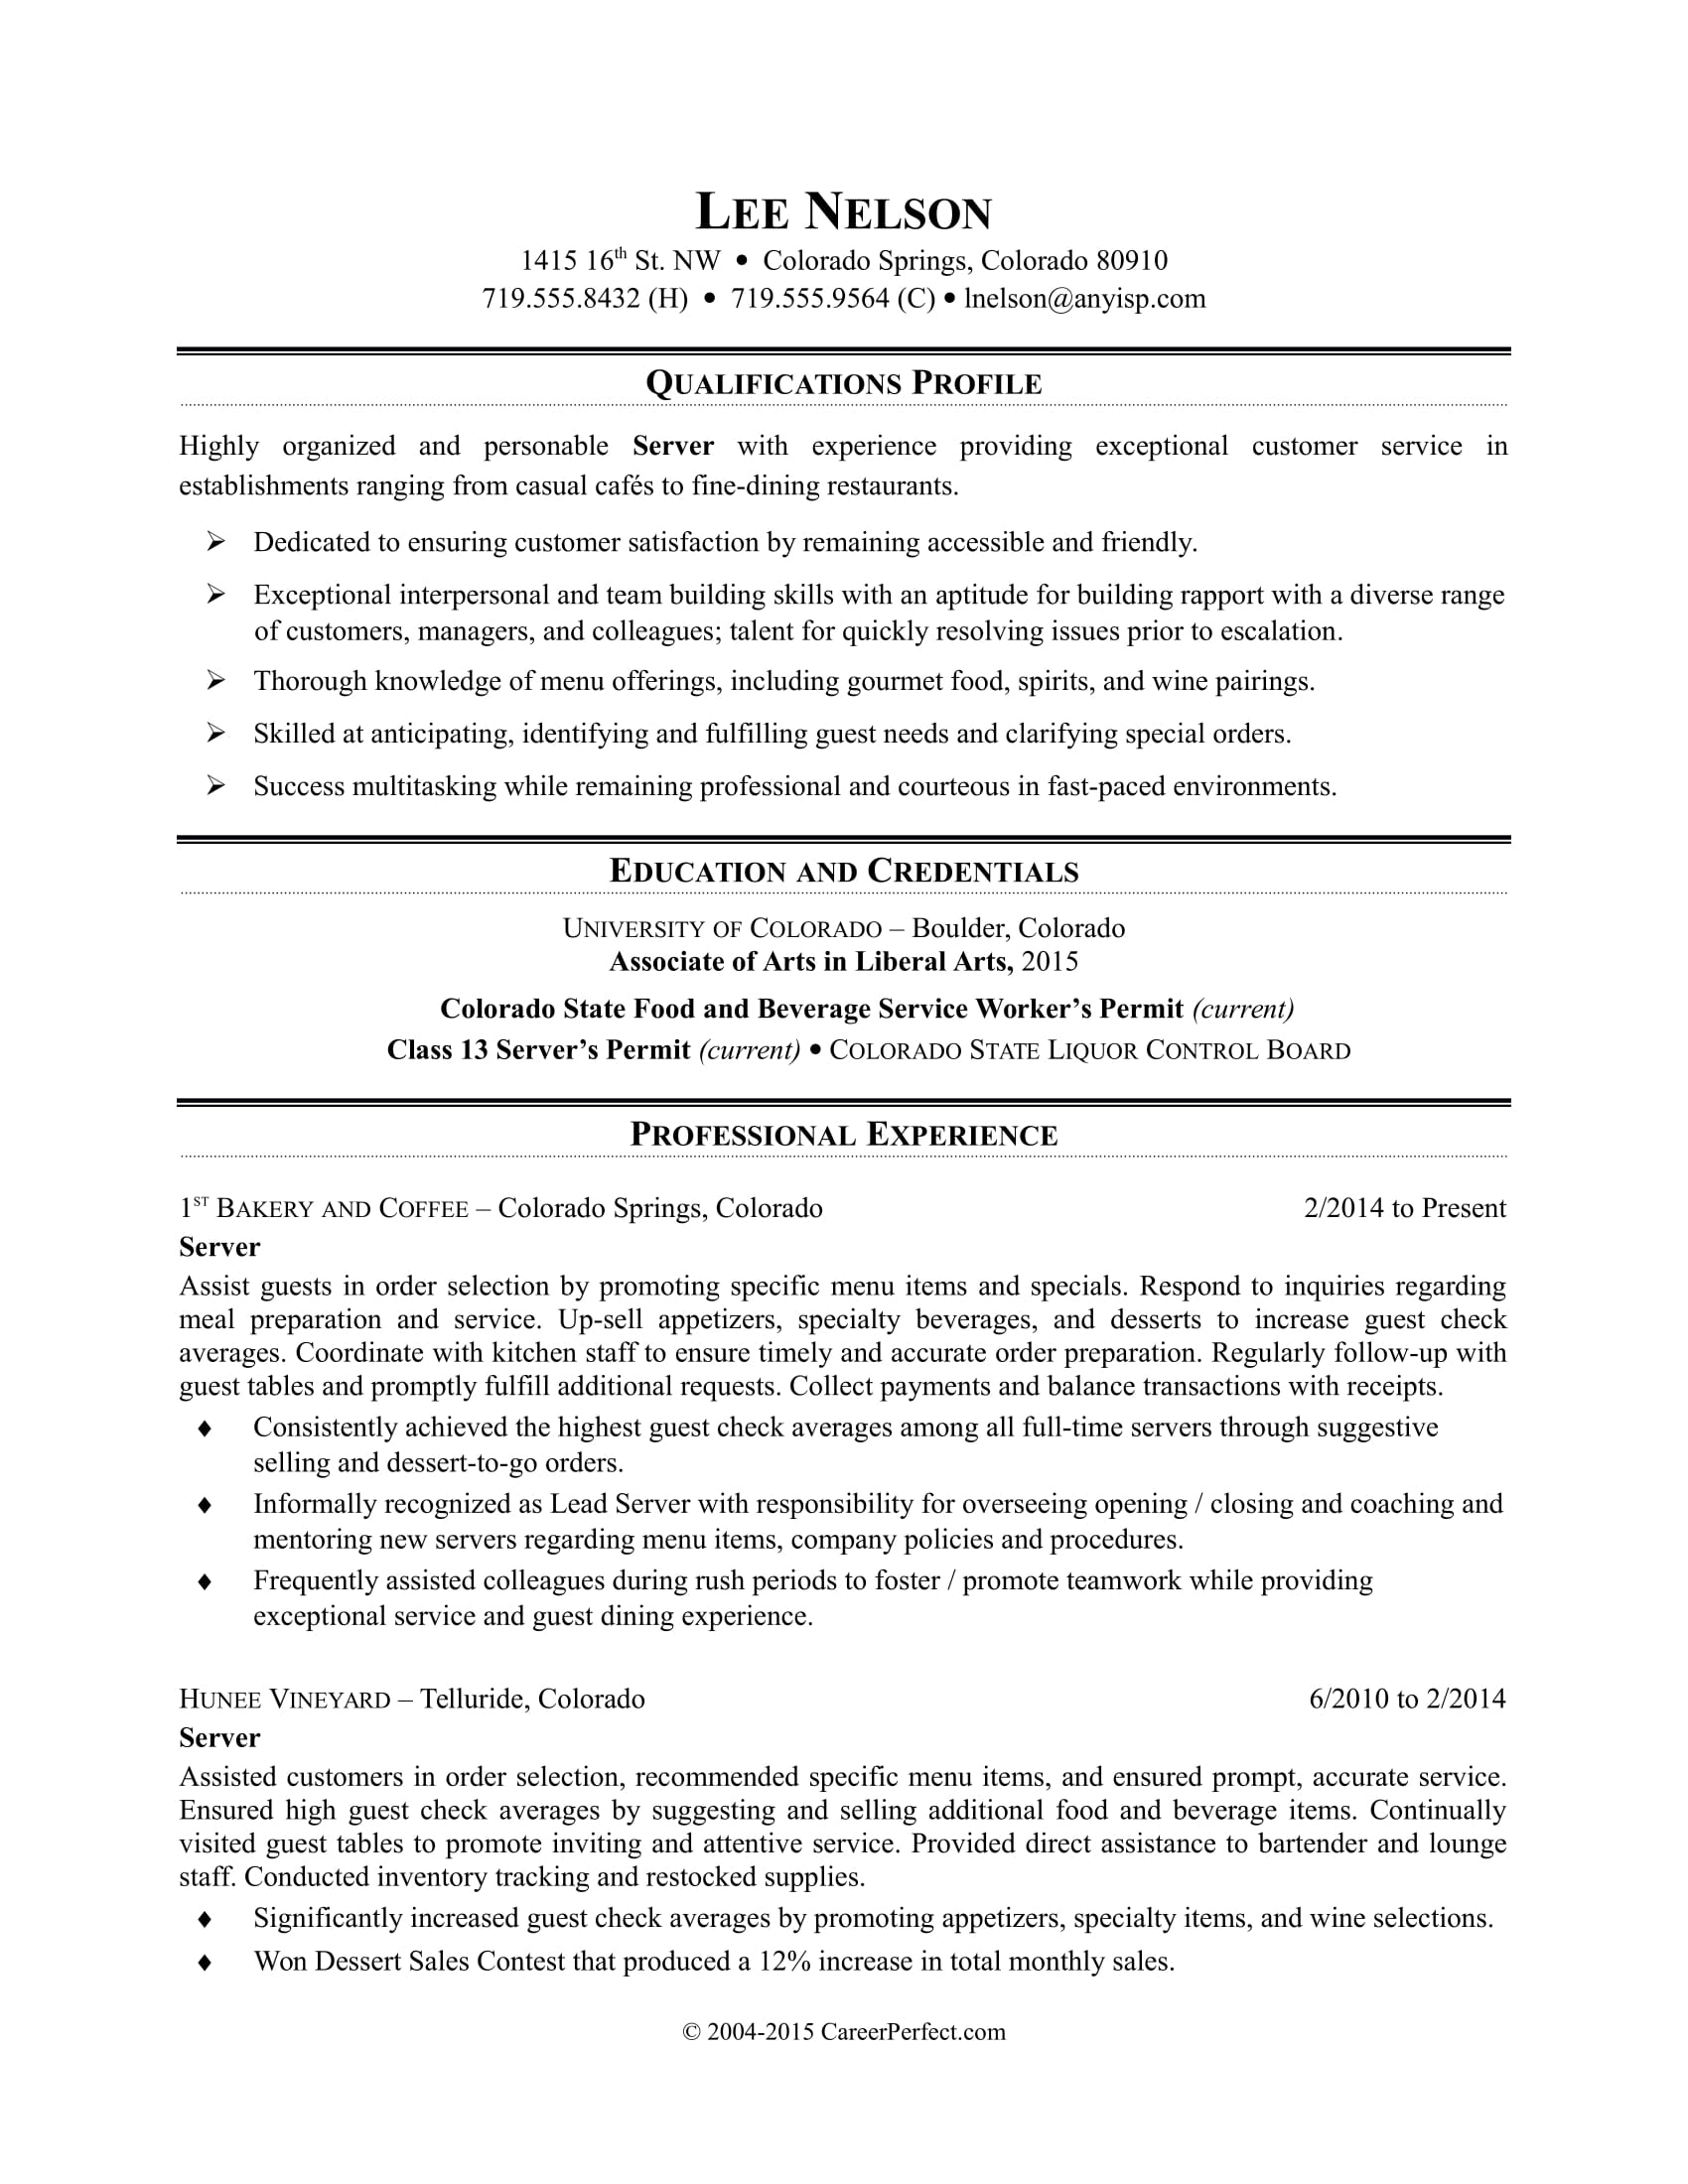 Sample Resume For A Restaurant Job